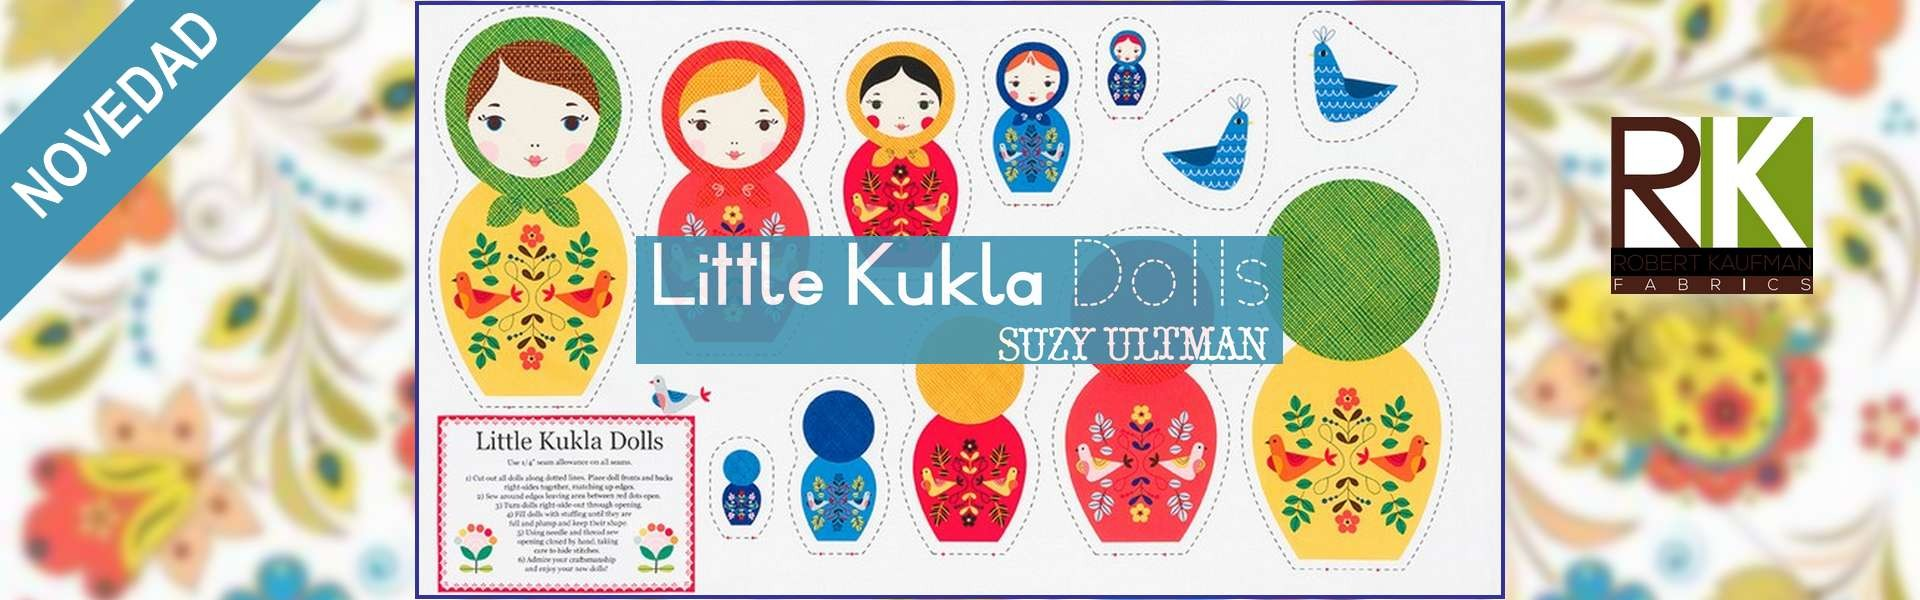 LITTLE KUKLA DOLLS